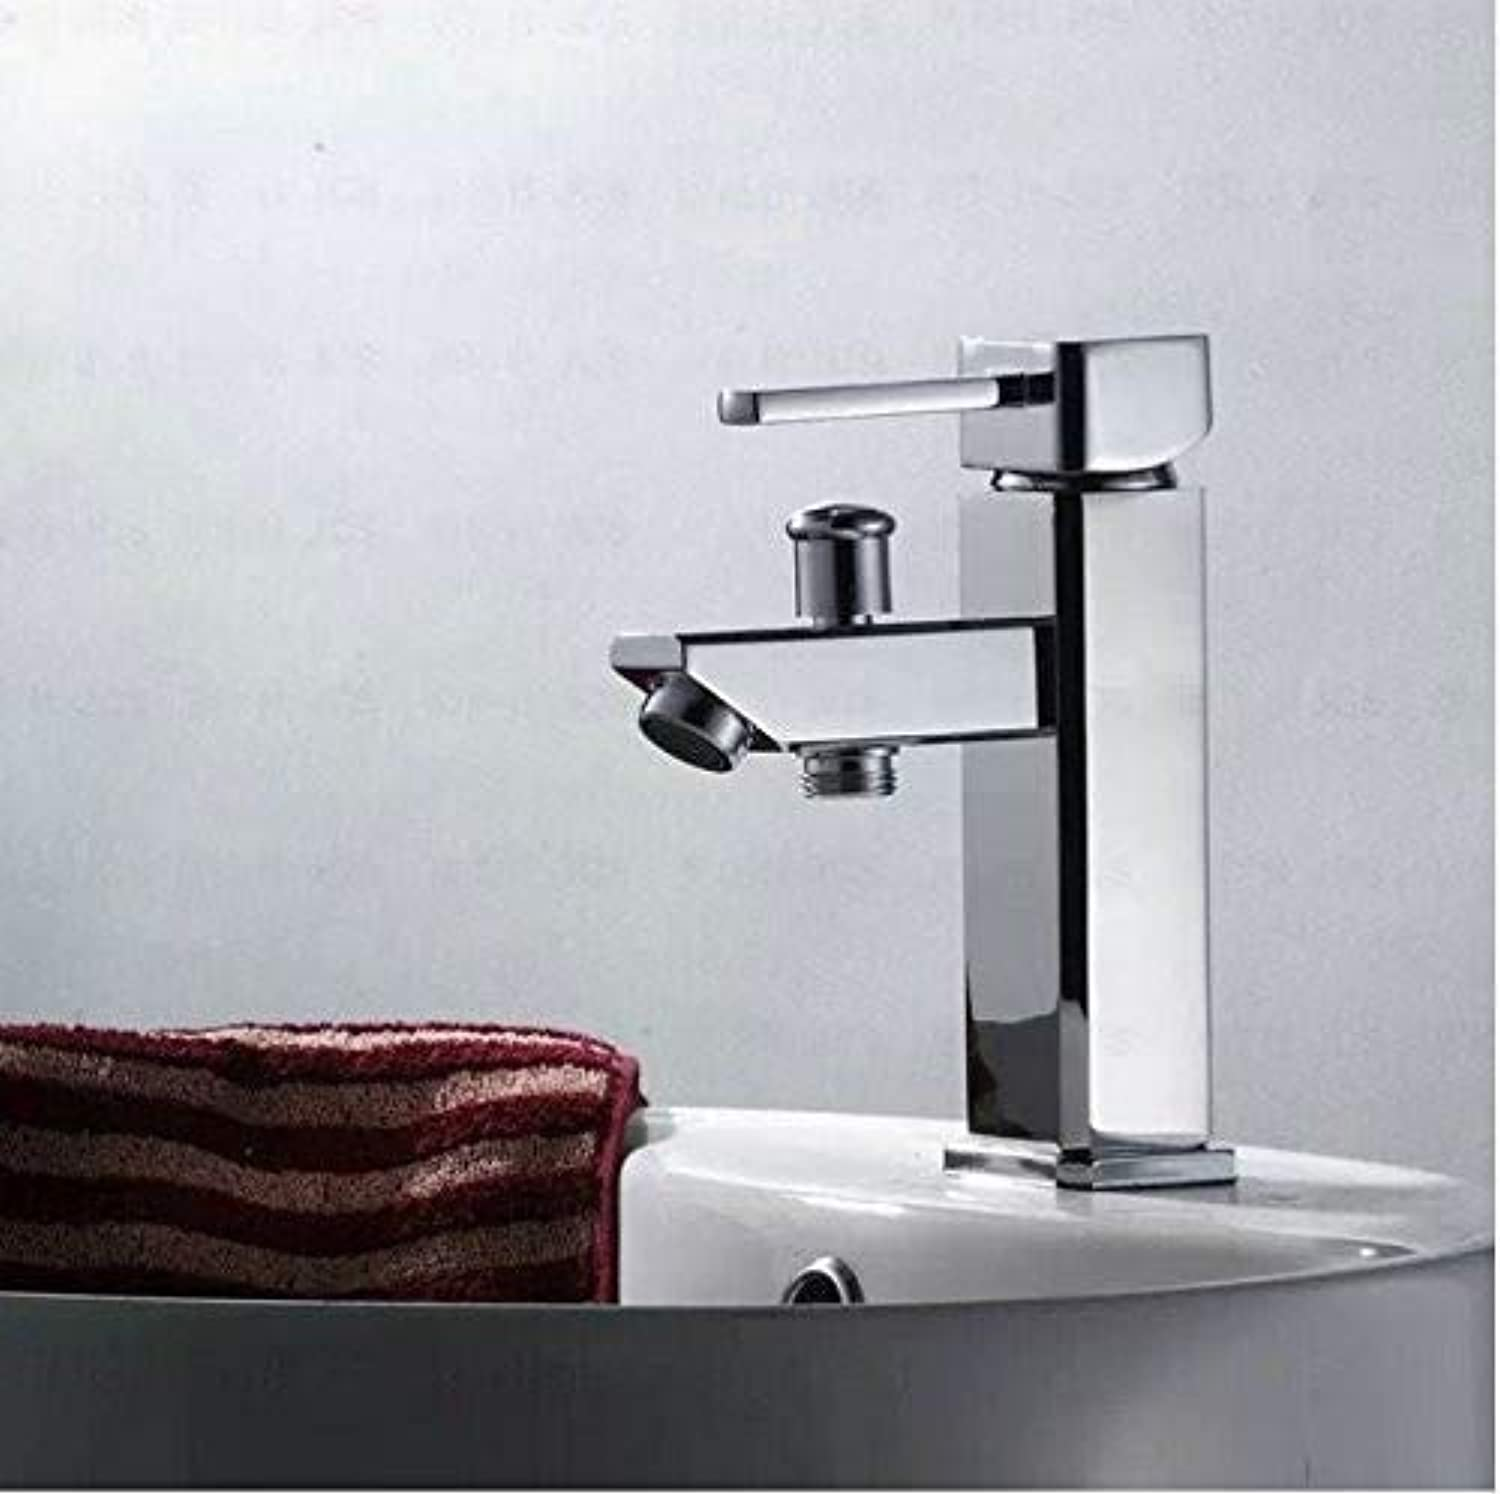 redOOY Faucet Deck Mounted Chrome Polished Finish Bathroom Faucet Basin Mixer Tap Hot And Cold Water Tap